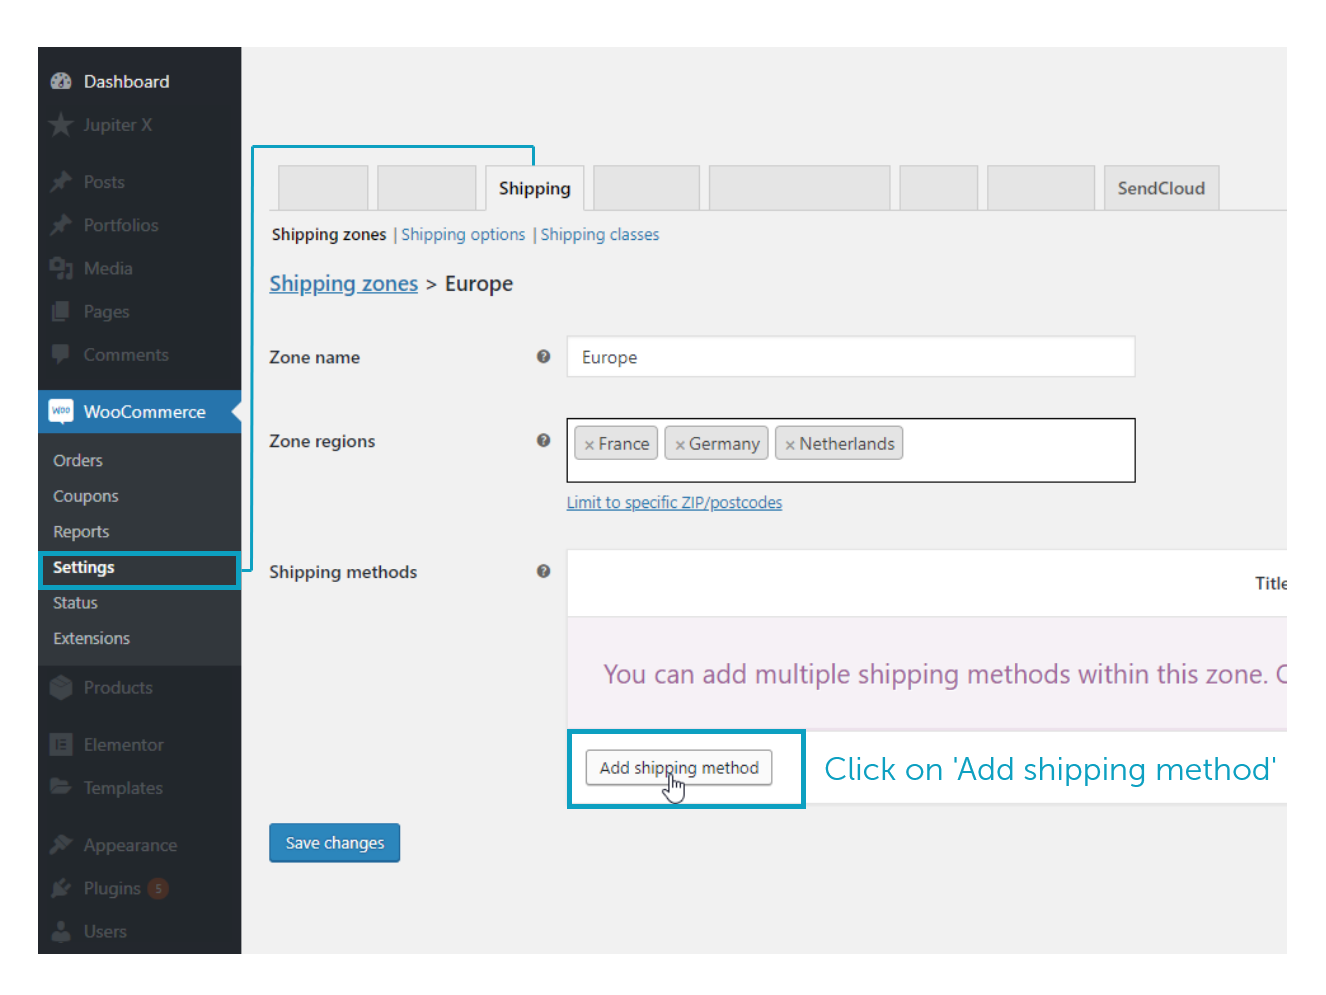 WooCommerce_add_shipping_method.png